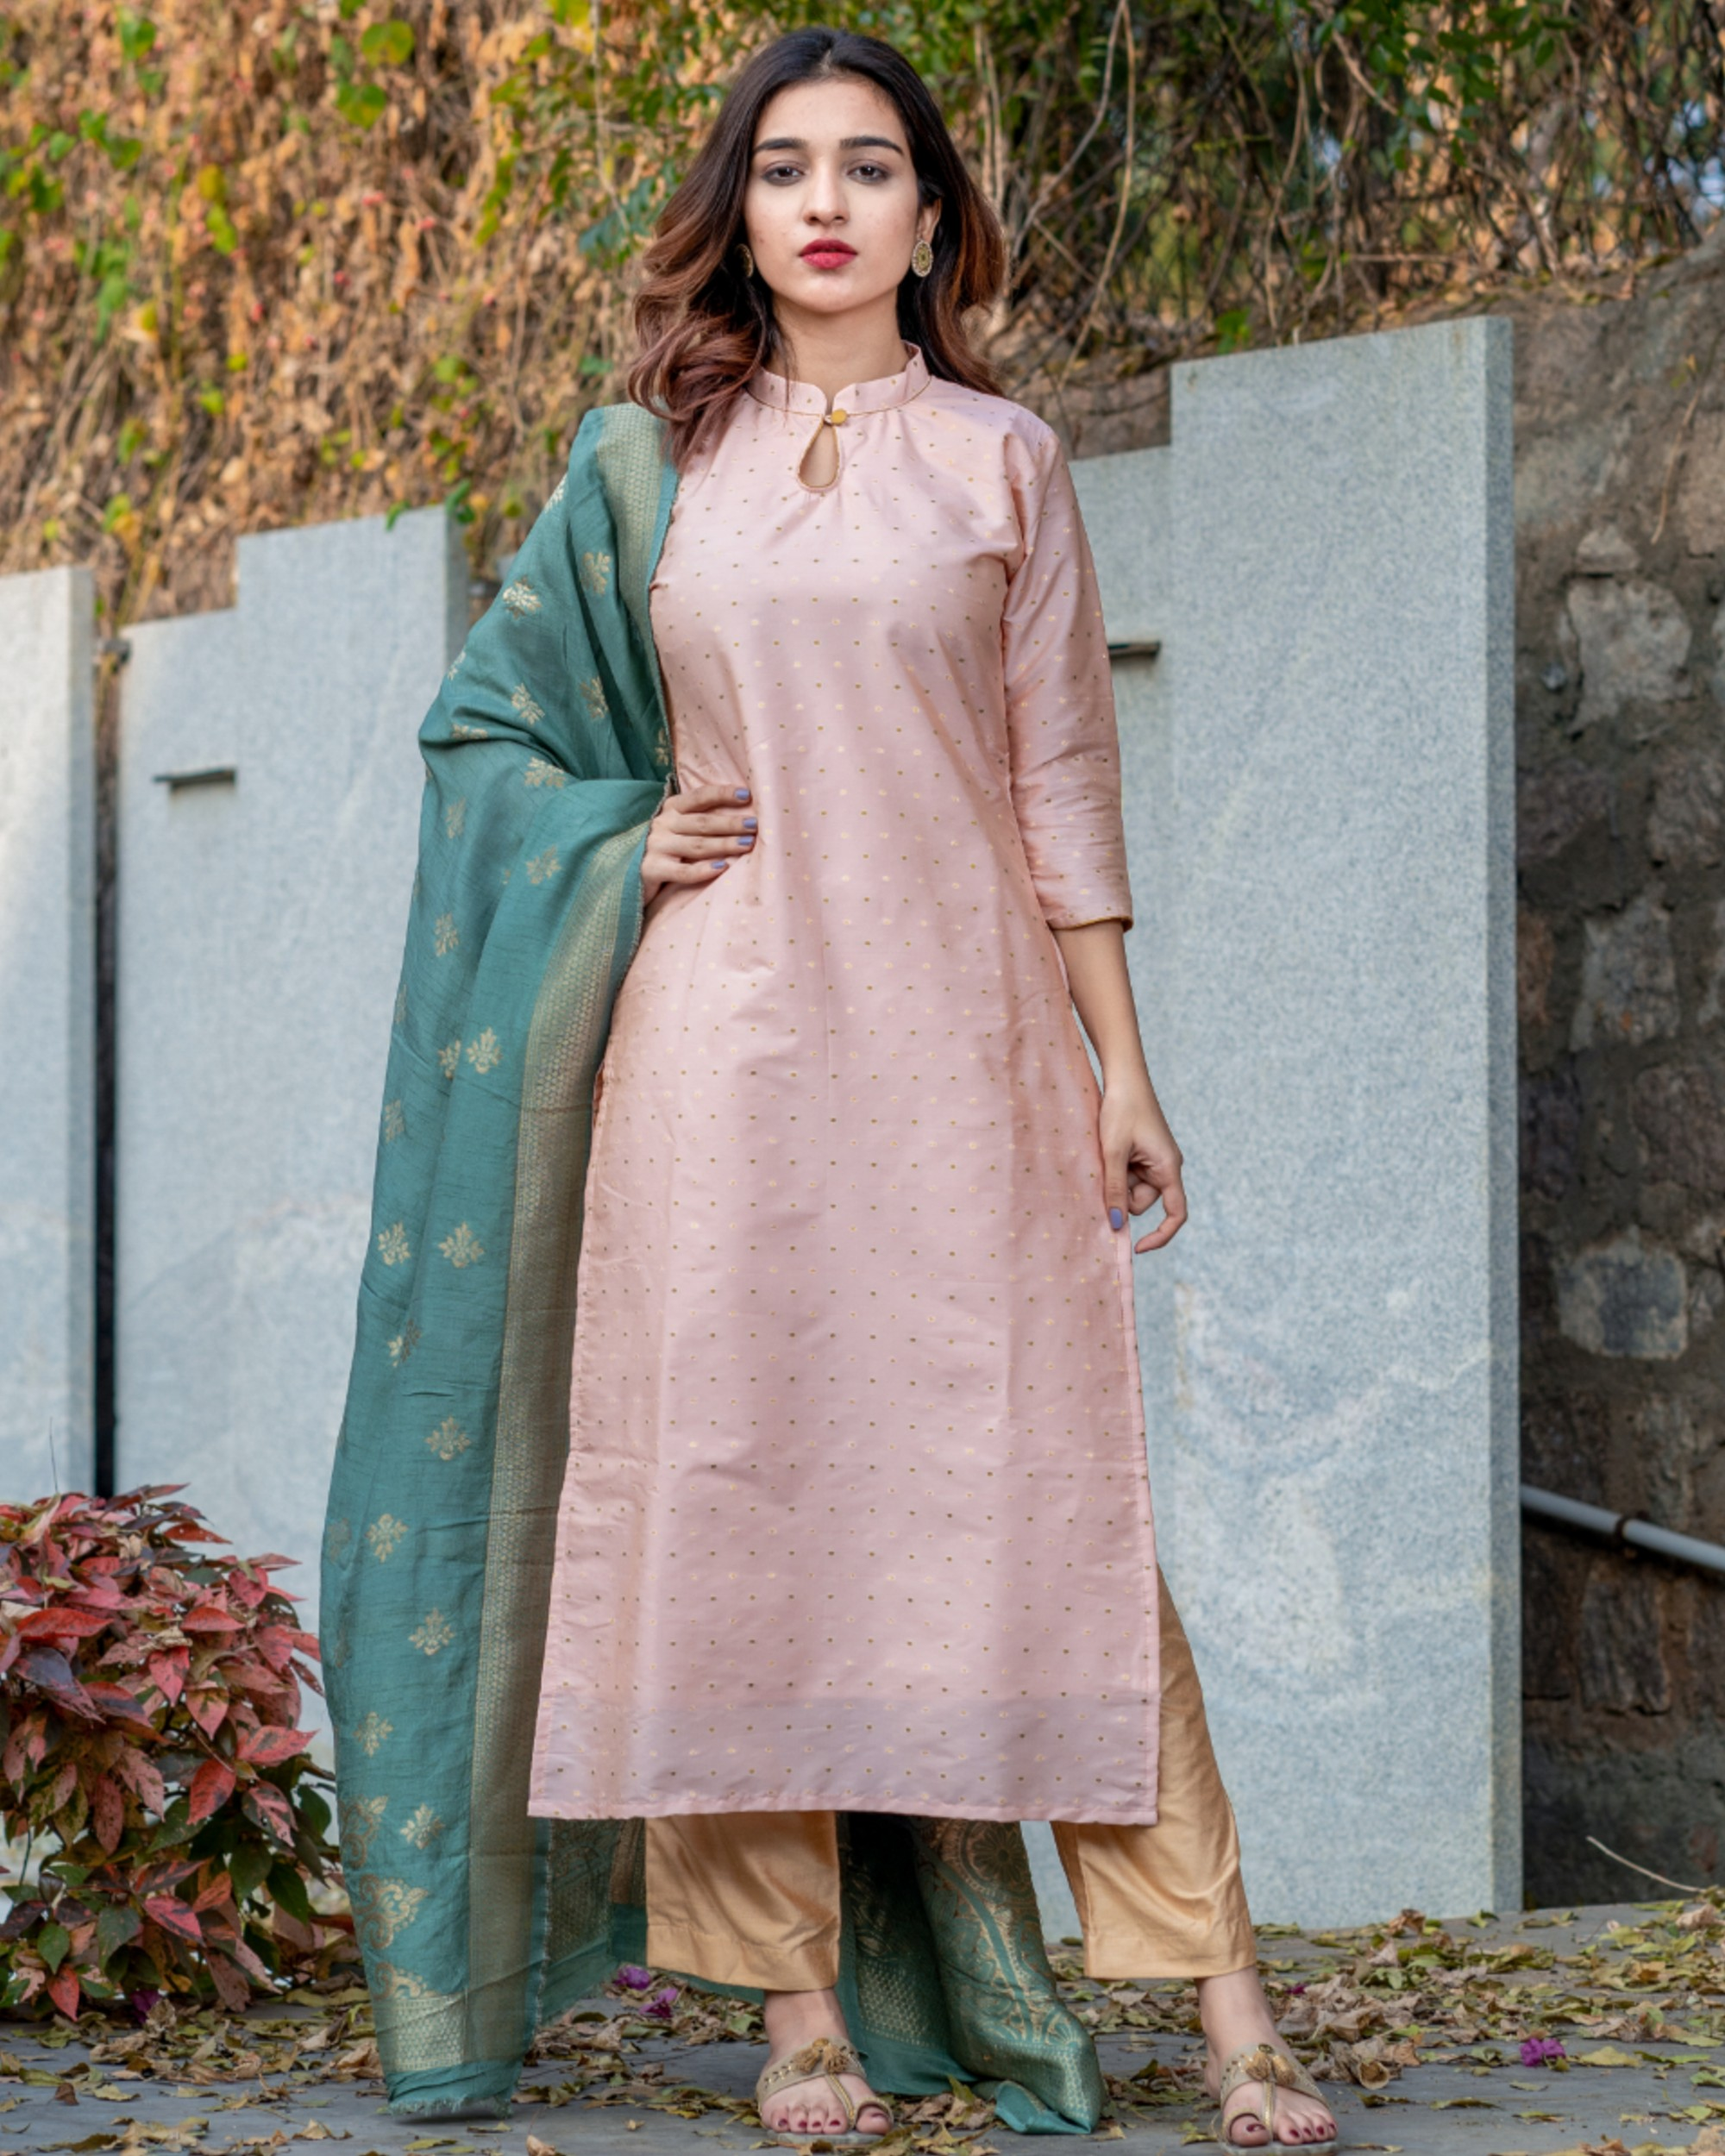 Pearl pink banarasi kurta and pants set with teal blue dupatta- set of three